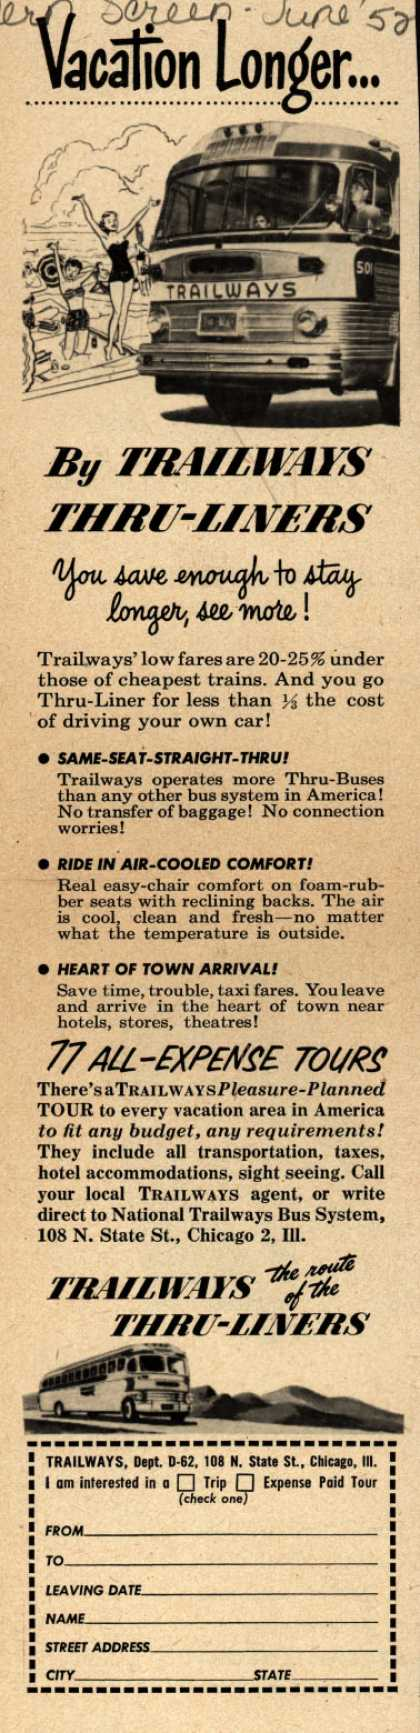 National Trailways Bus System's Thru-Liners – Vacation Longer... (1952)